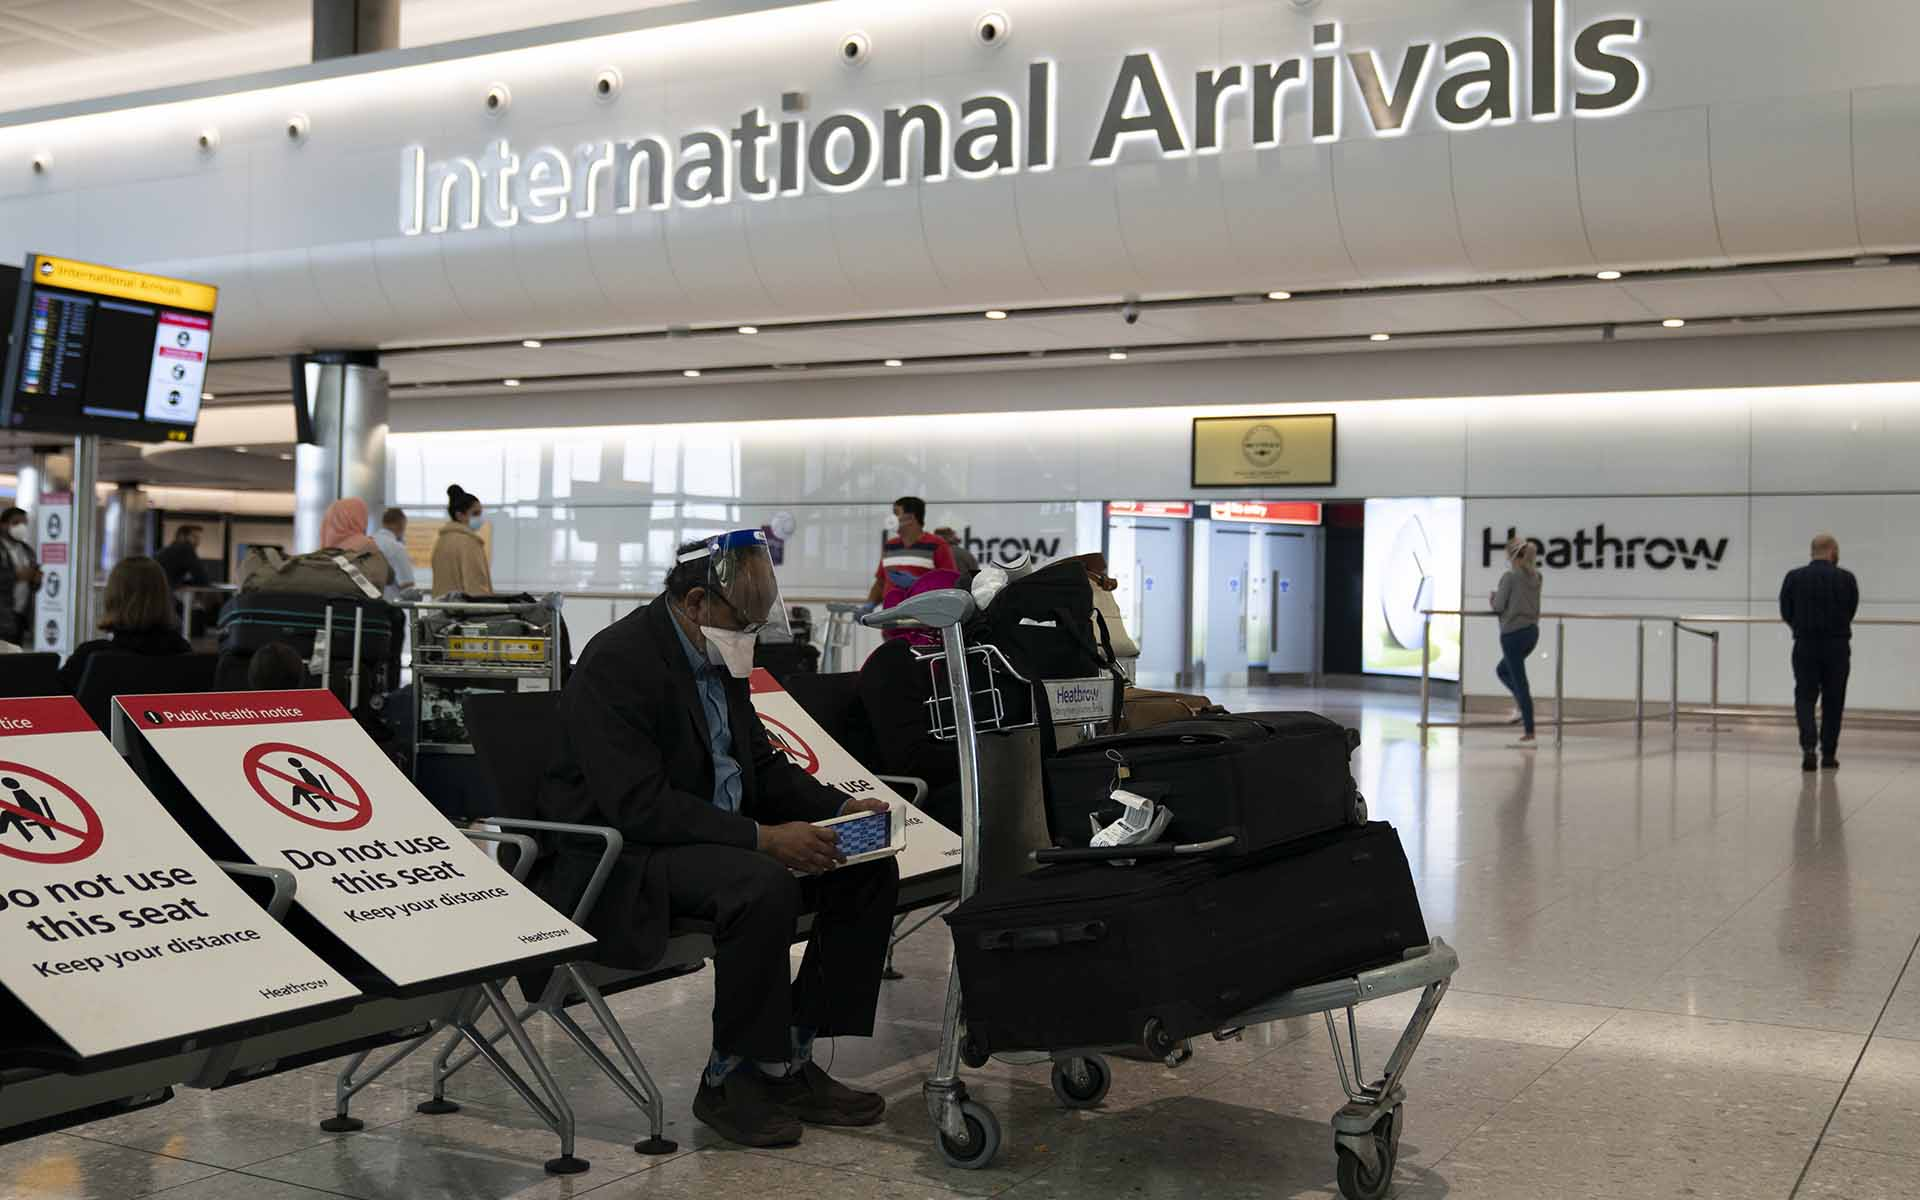 London (United Kingdom), 08/06/2020.- Passengers arrive at Heathrow Airport, London Britain, 08 June 2020. The British government has introduced new quarantine rules for travellers arriving from overseas. Those arriving into the UK must provide details of where they are staying and must stay home self isolating for 14 days. (Reino Unido, Londres) EFE/EPA/WILL OLIVER